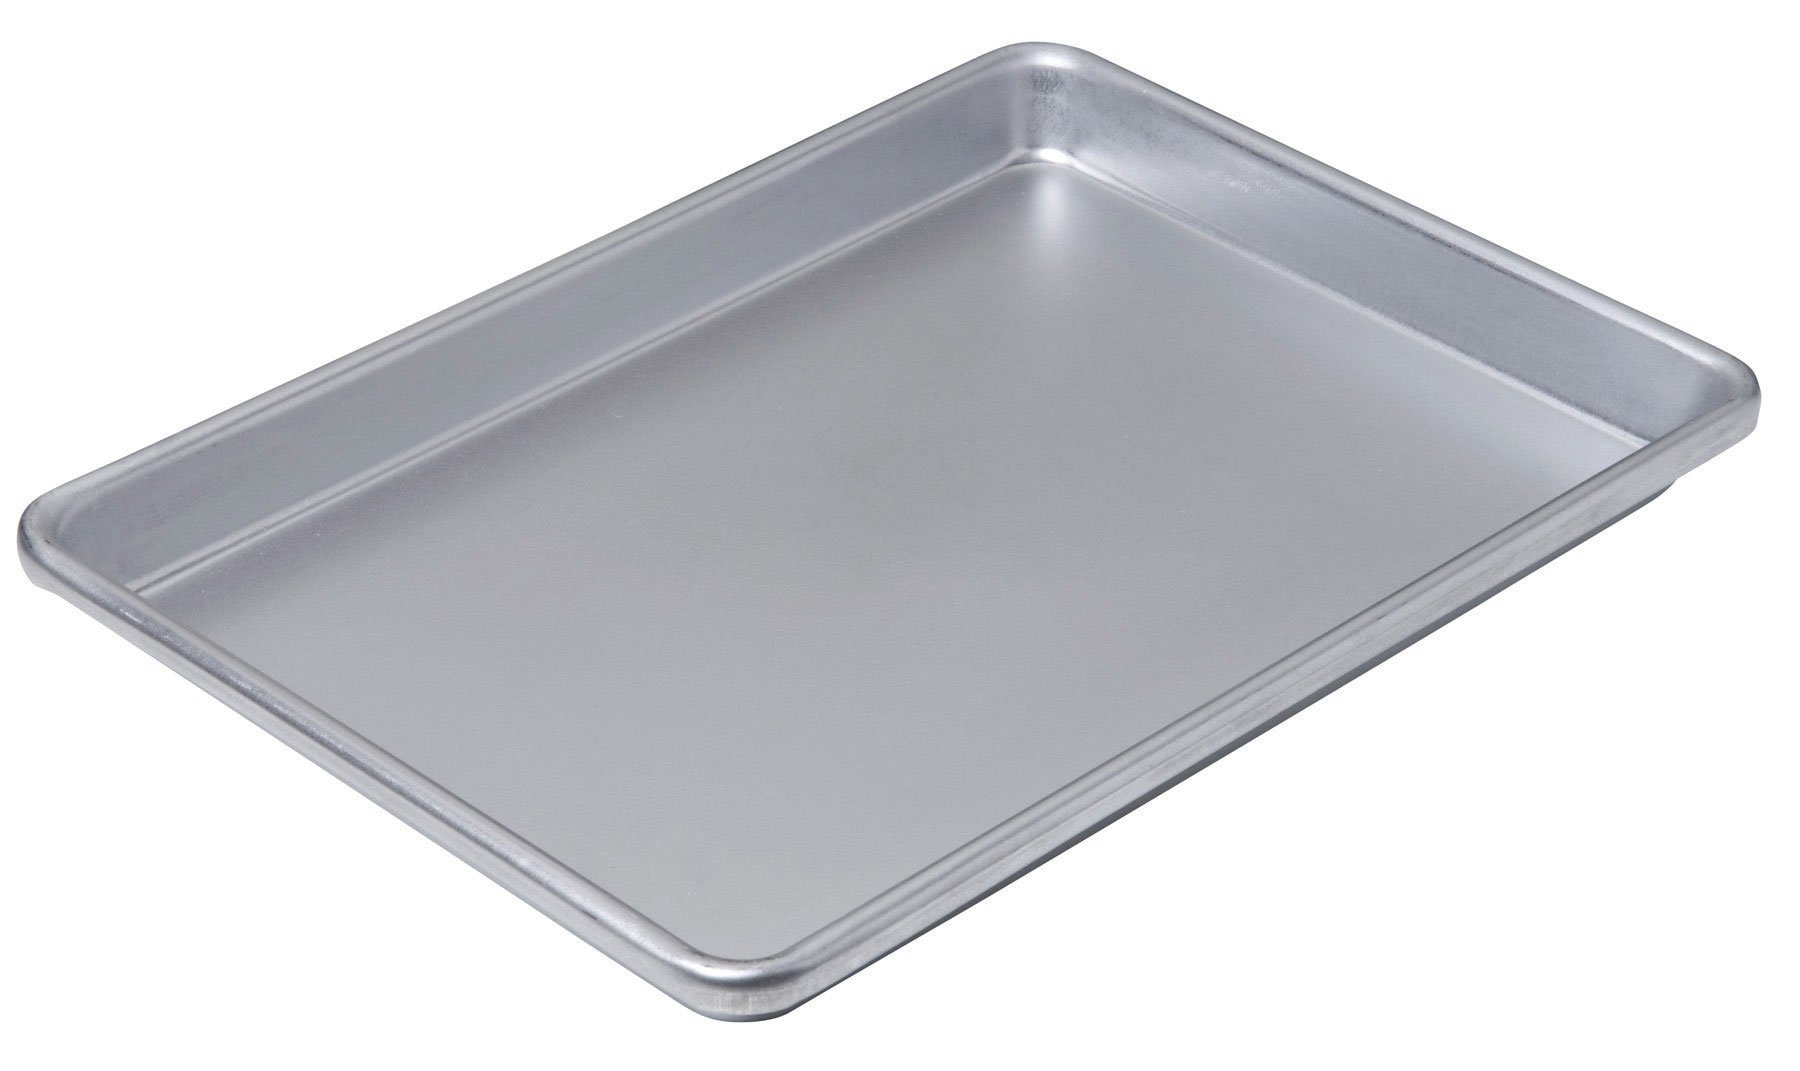 Jelly Roll Cake Pan Dimensions